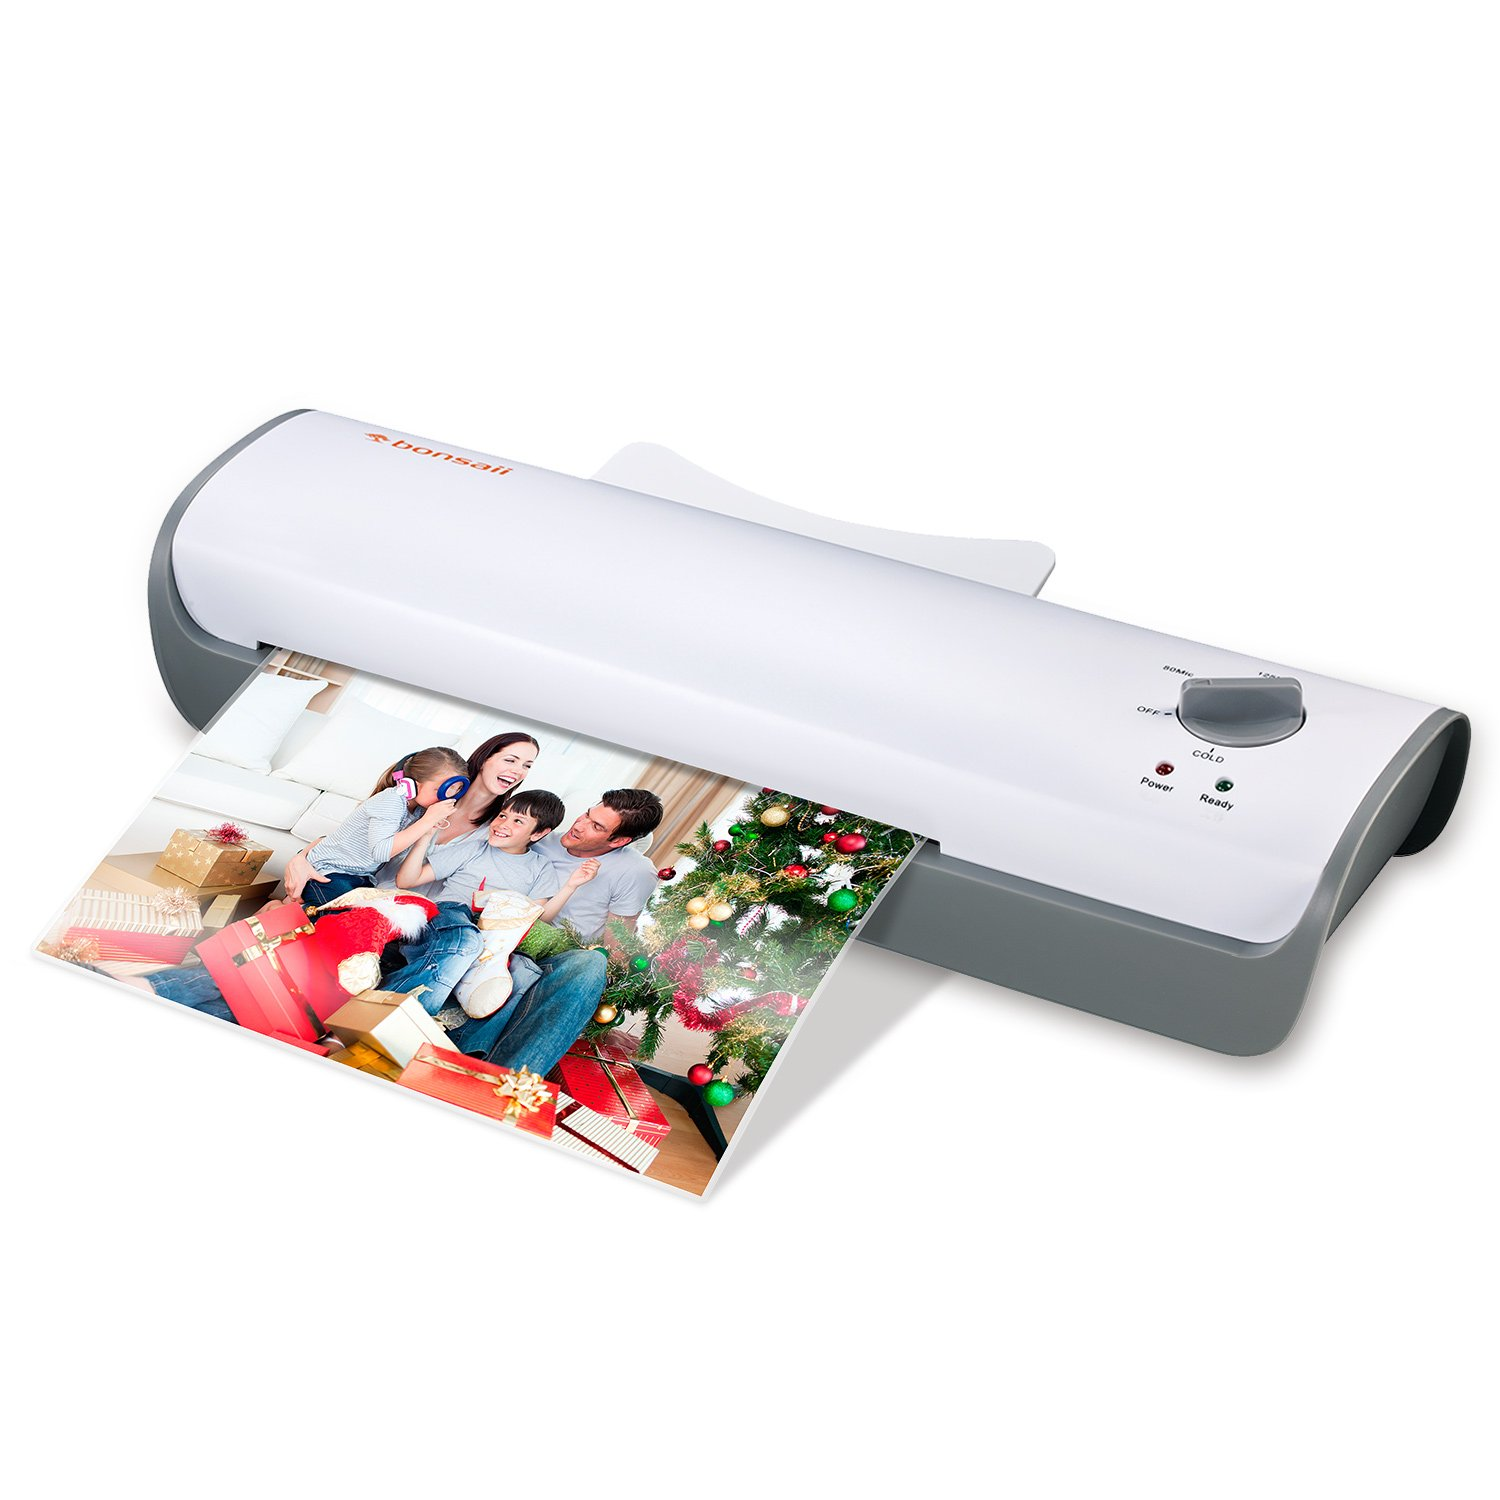 "Bonsaii Laminator Machine, 13"" Thermal Laminator, Quick 3-5 mins Warm-up, High Laminating Speed, Jam-Release Switch (L307-A)"